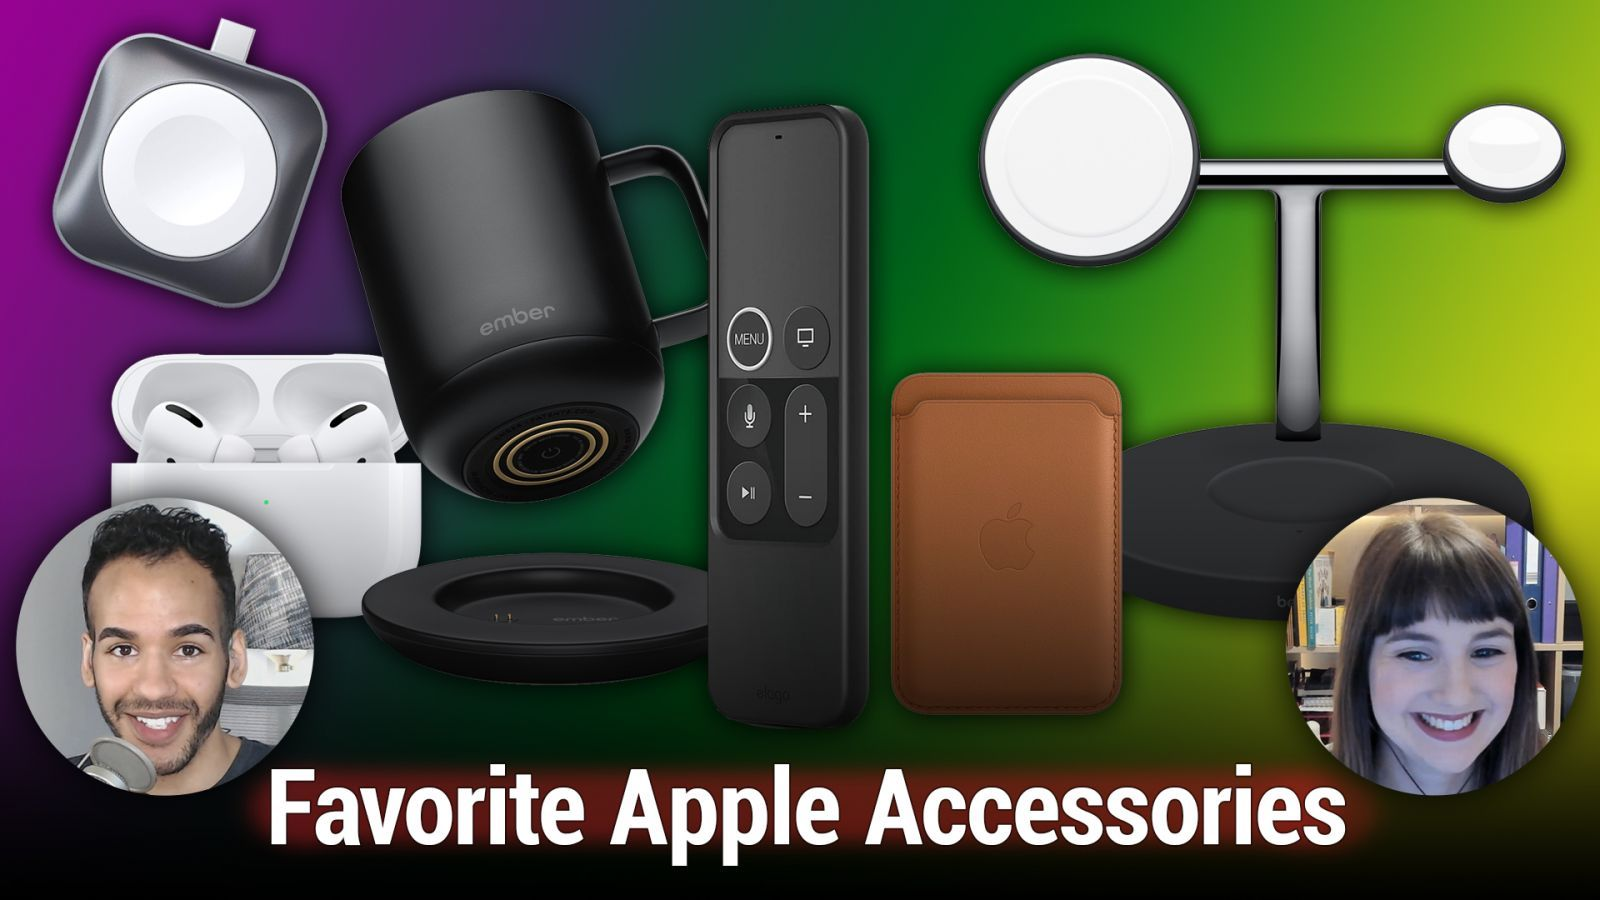 iOS 543: Our Favorite Apple Accessories - Belkin Boost Up, Satechi Apple Watch Charger, Ember Mug, more.